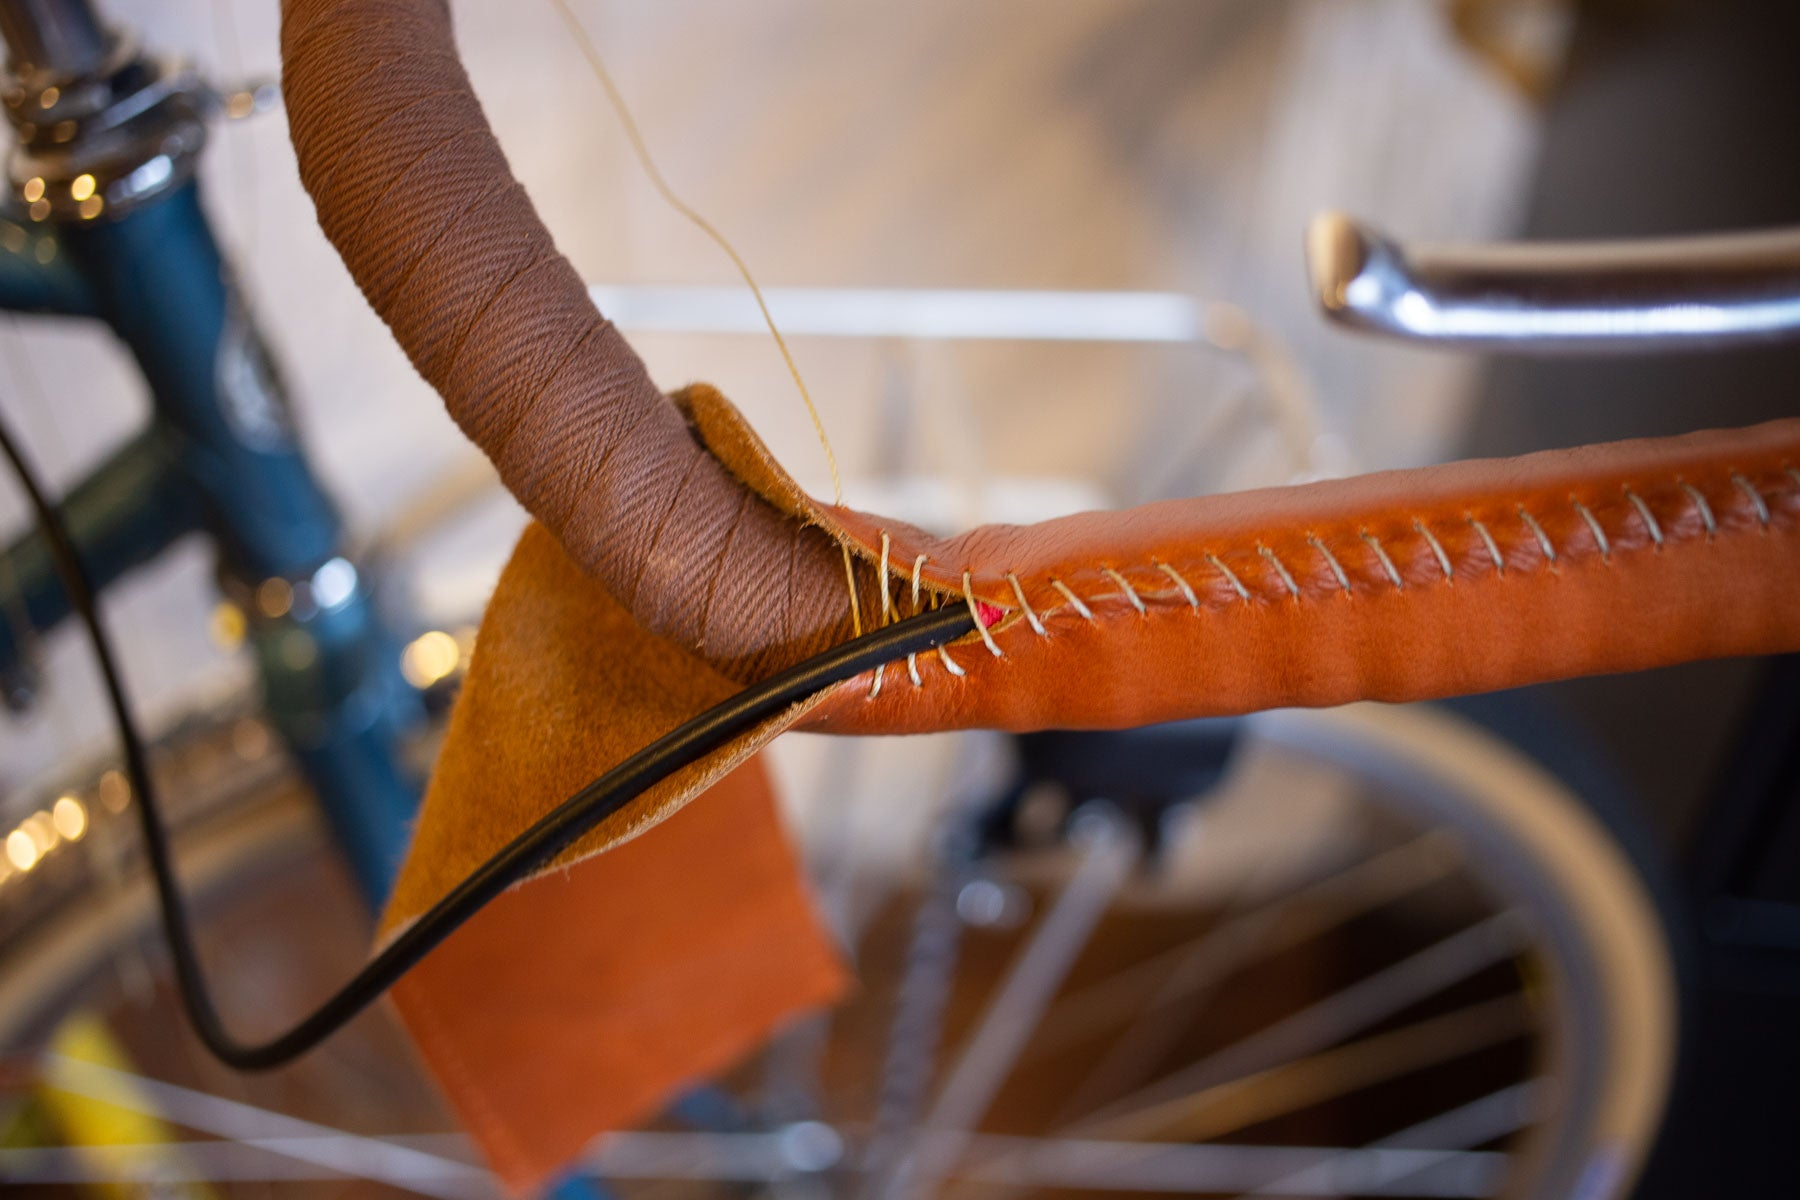 Progress in stitching leather handlebar wrap